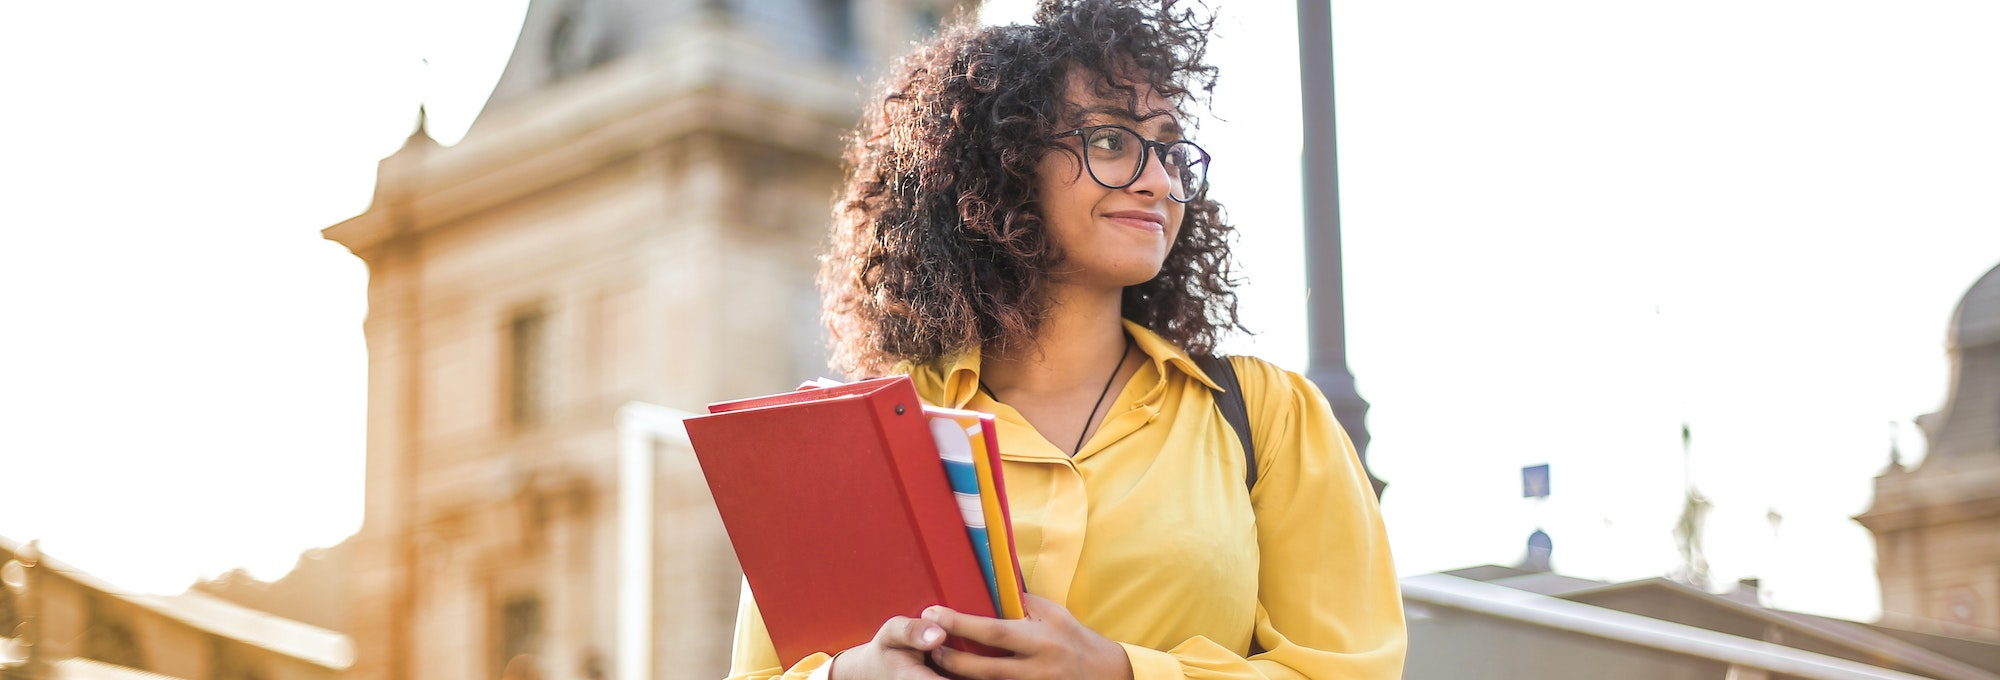 female carrying books wearing glasses